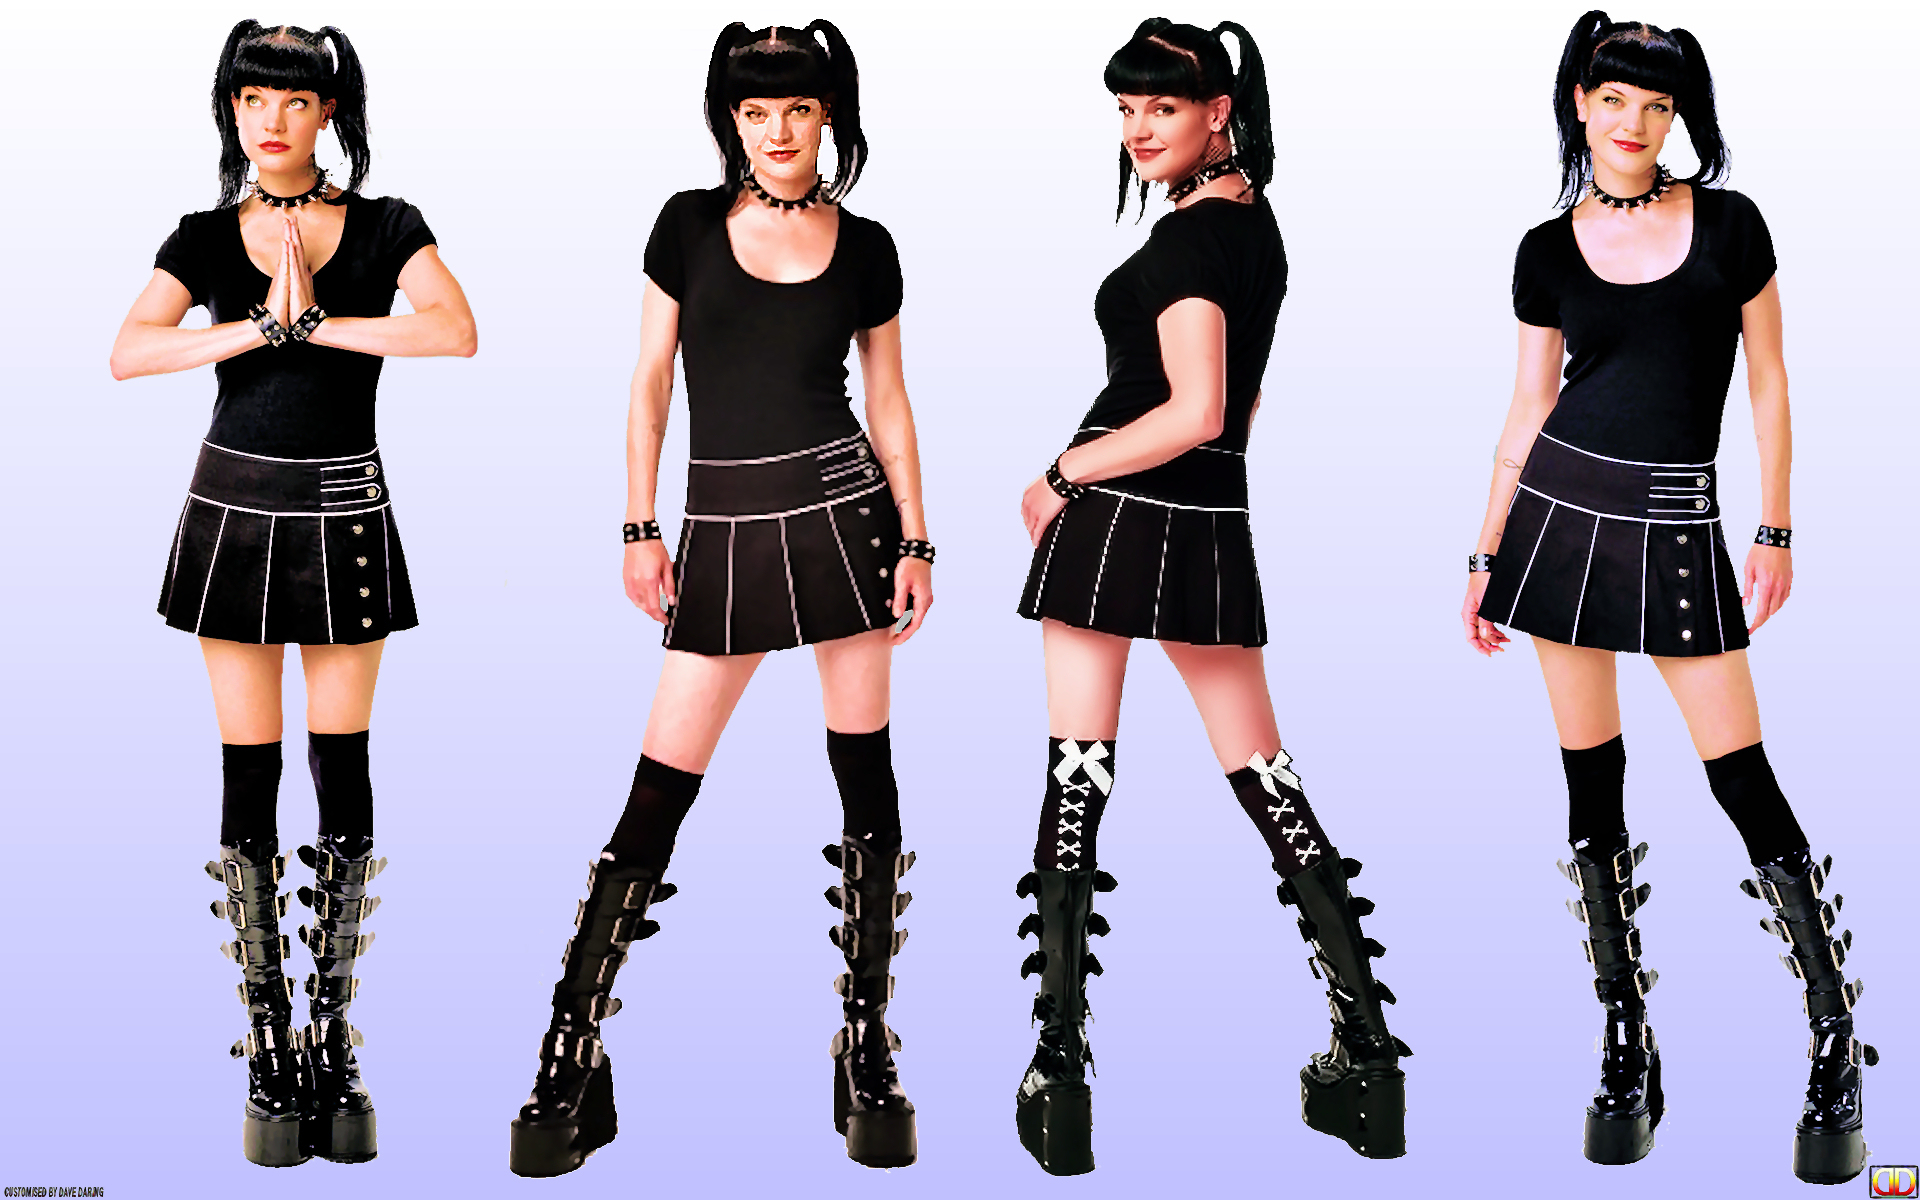 Remarkable, rather pauley perrette abby sciuto will refrain